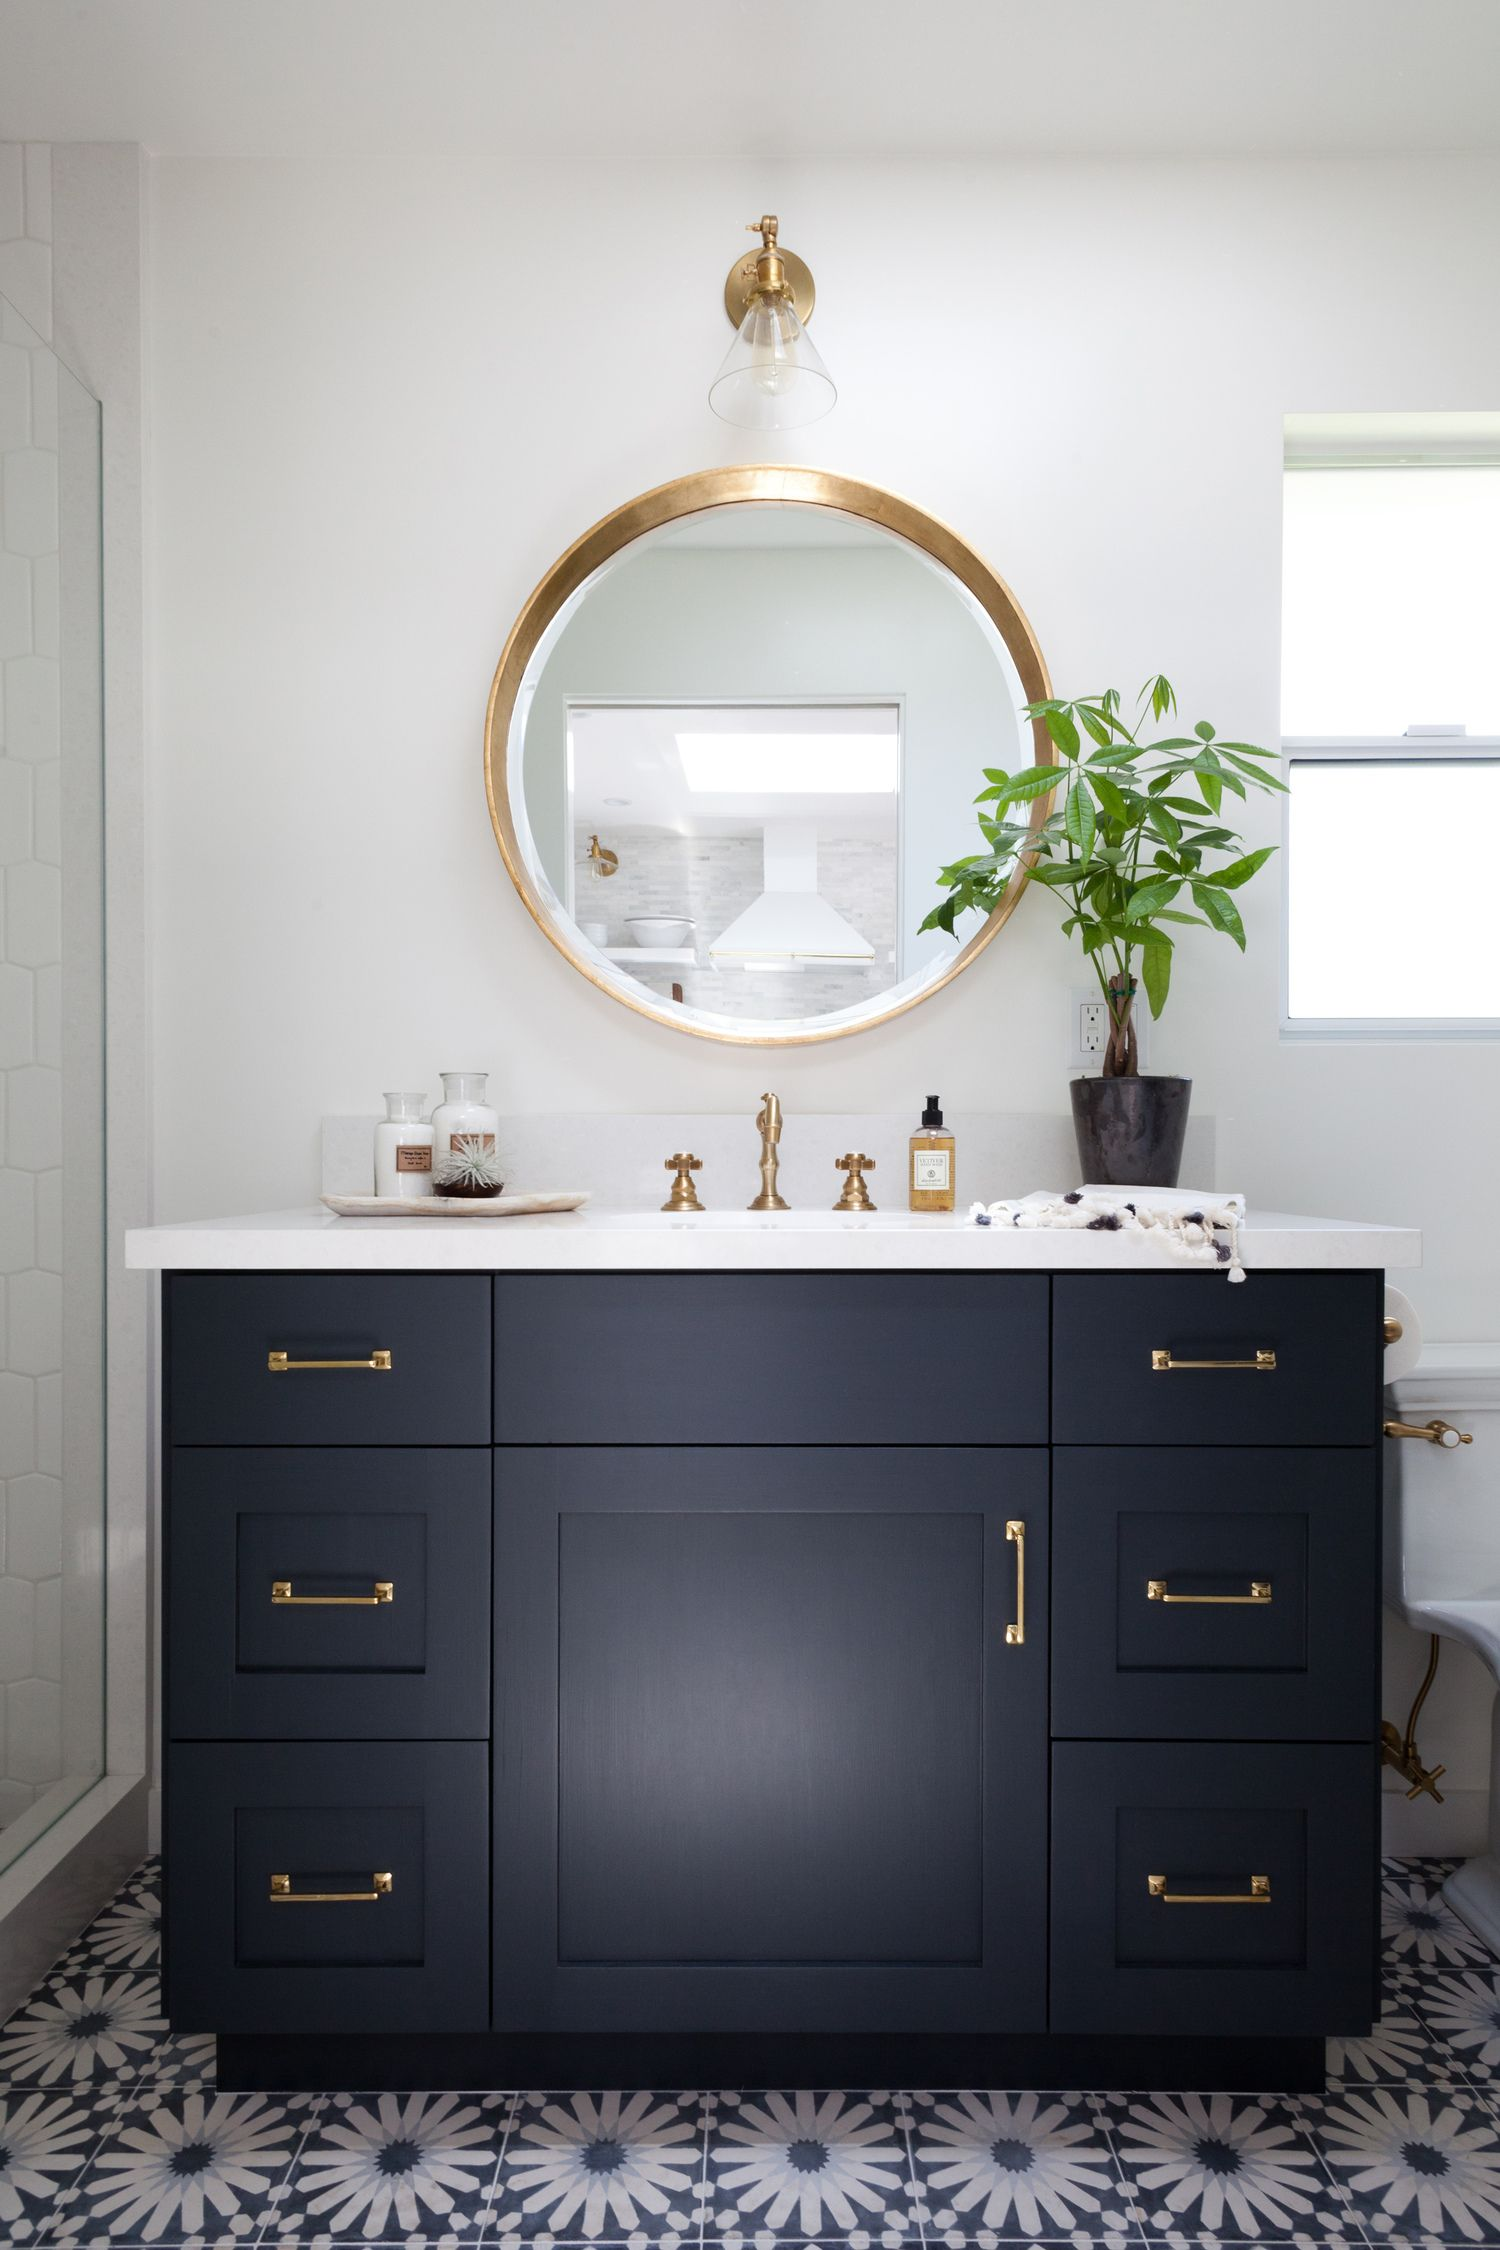 Navy Cabinets Gold Mirror Tiles Floor Modern Bathroom Megala Ypnodwmatia Modern Bathroom Tile Bathroom Boho Bathroom